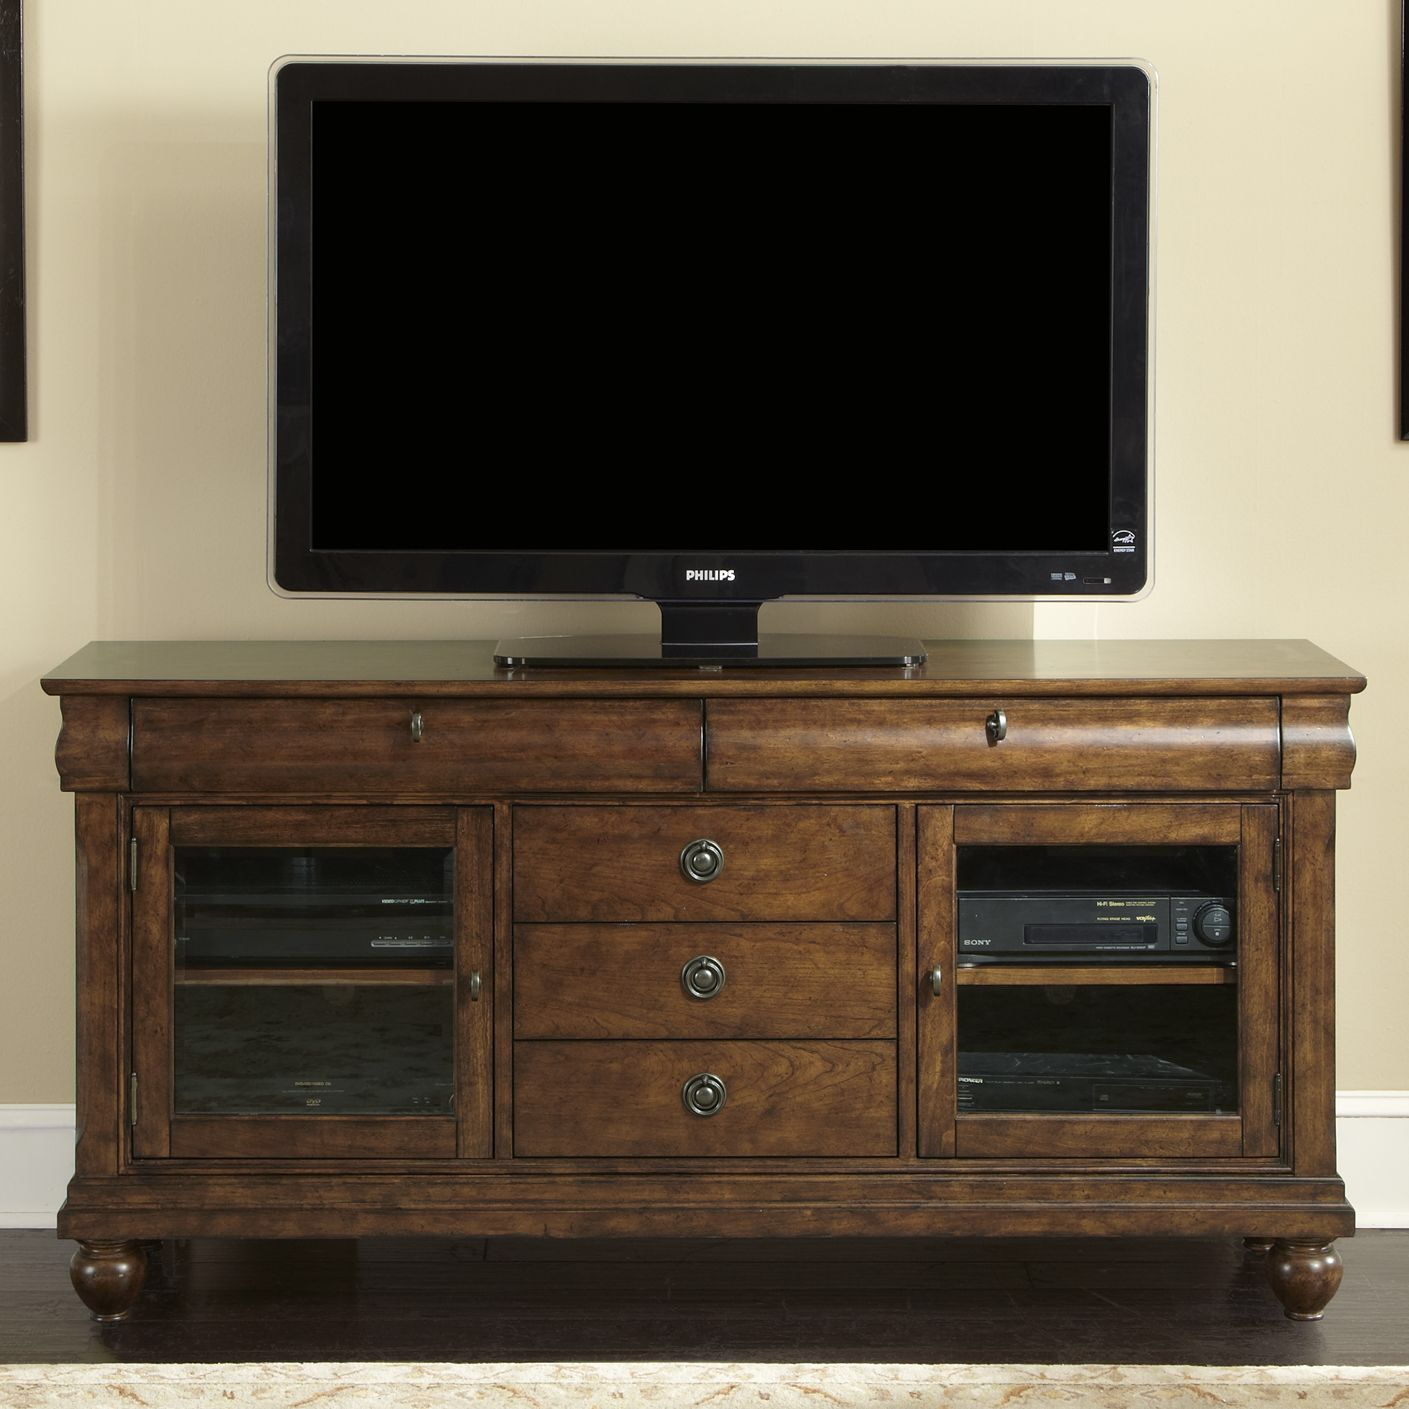 Rustic Traditions TV Stand 1950 s ranch remodel Pinterest